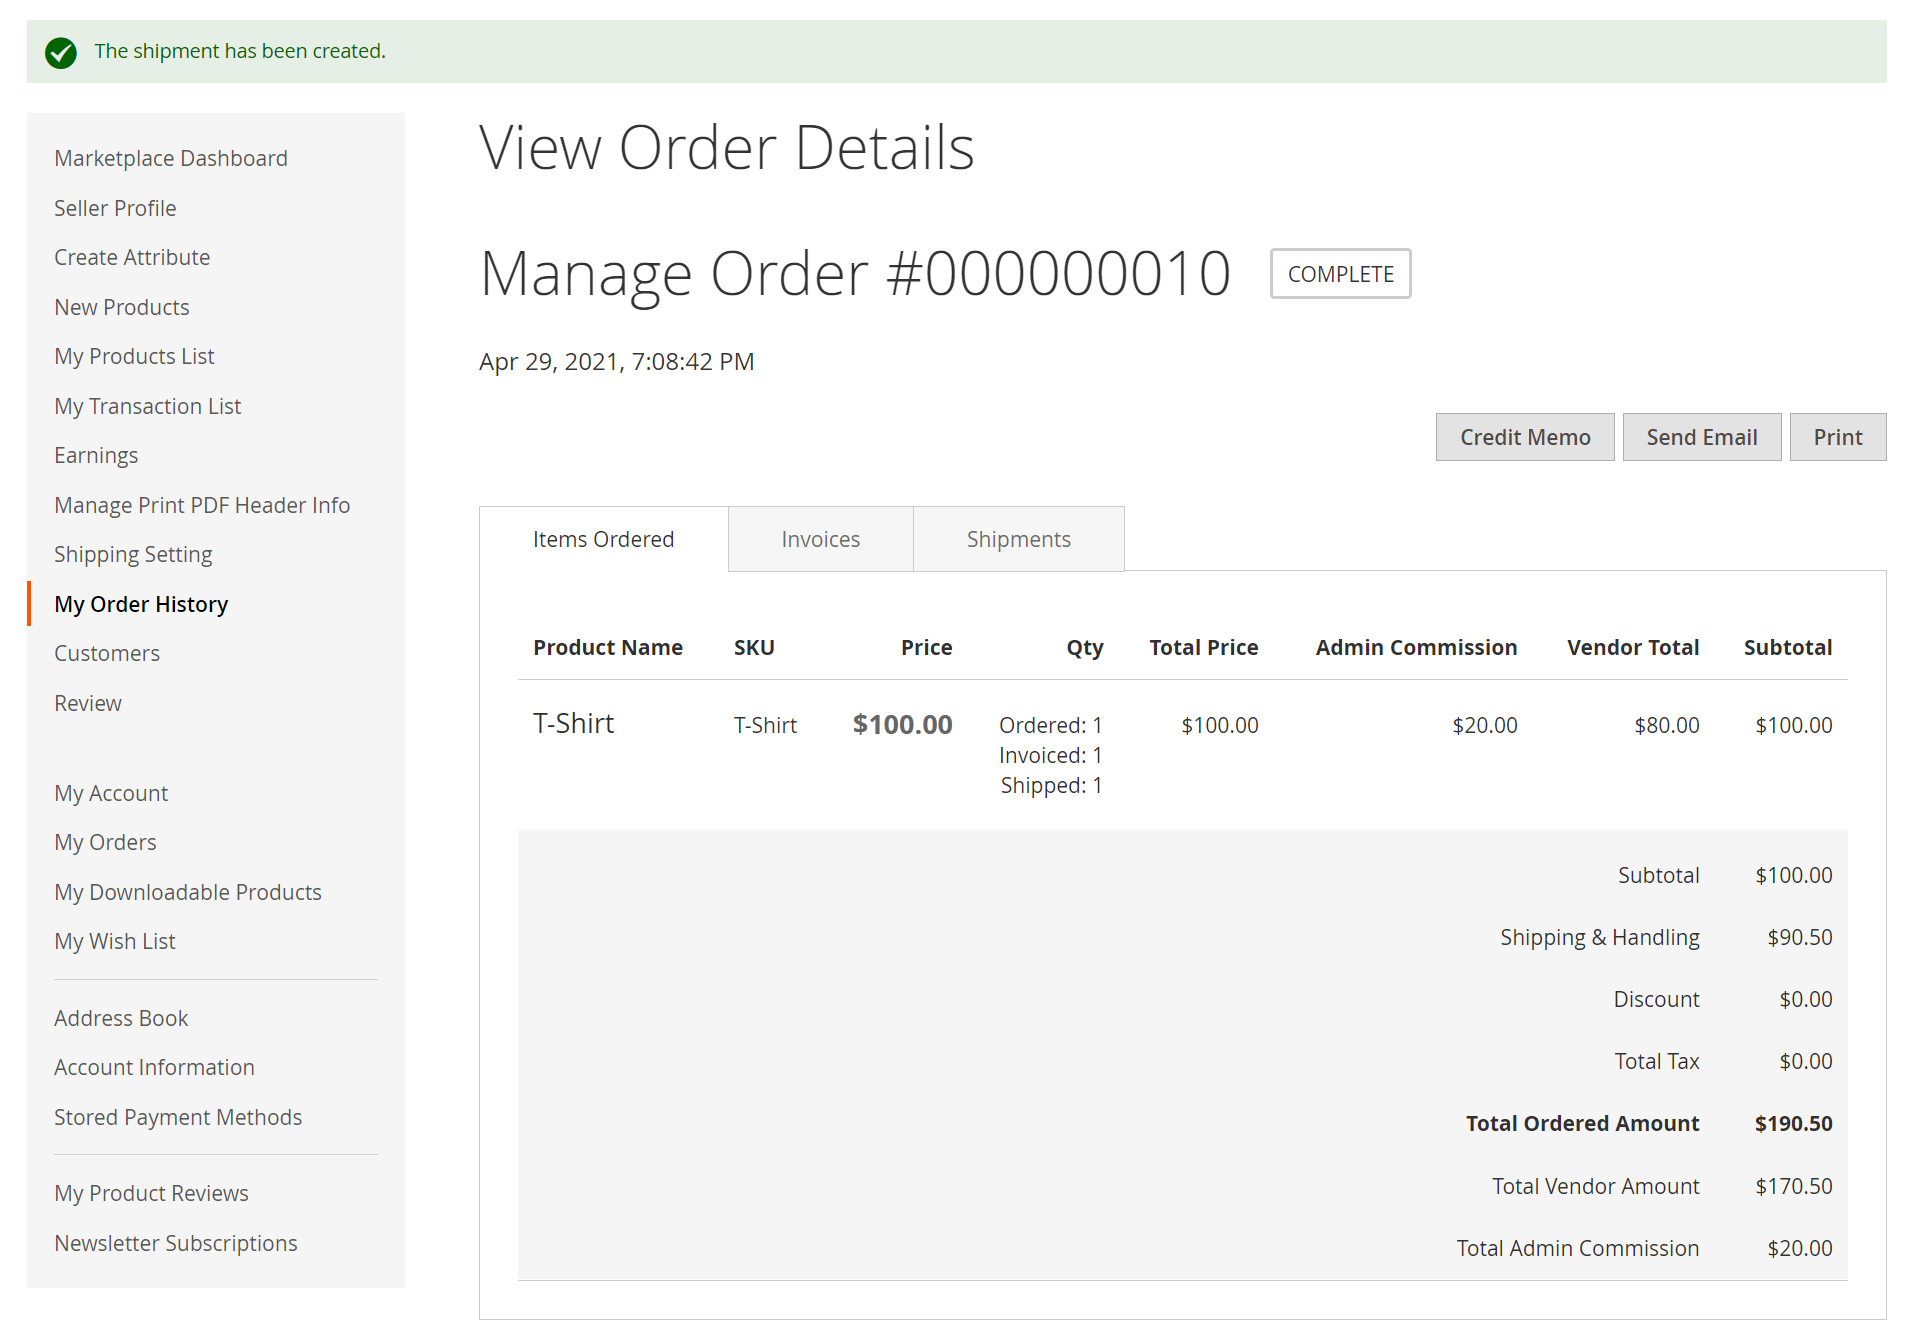 correios-shipping-shipment-and-invoice-created